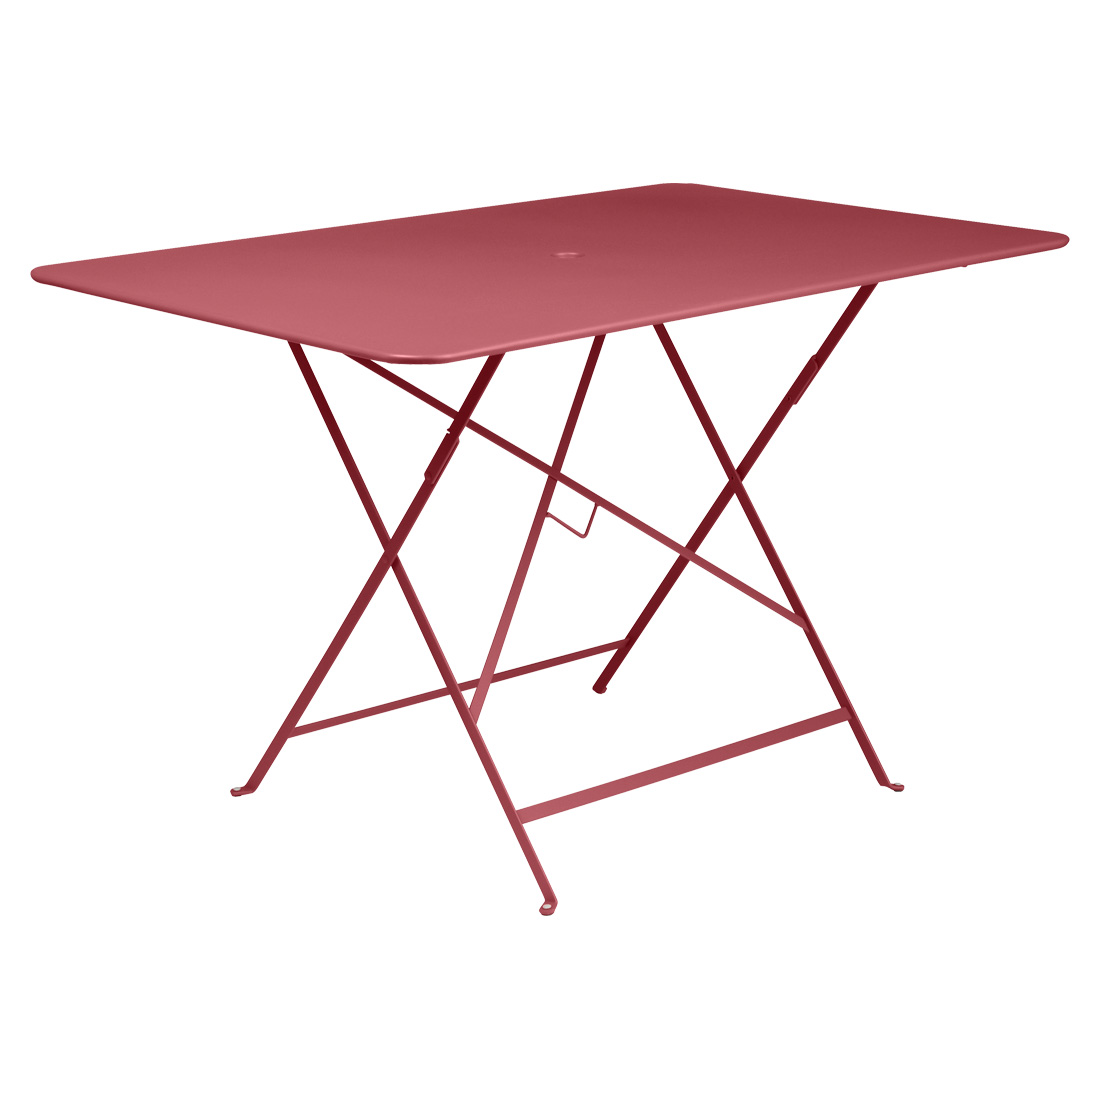 Bistro Rectangular Table 117cm - Chili